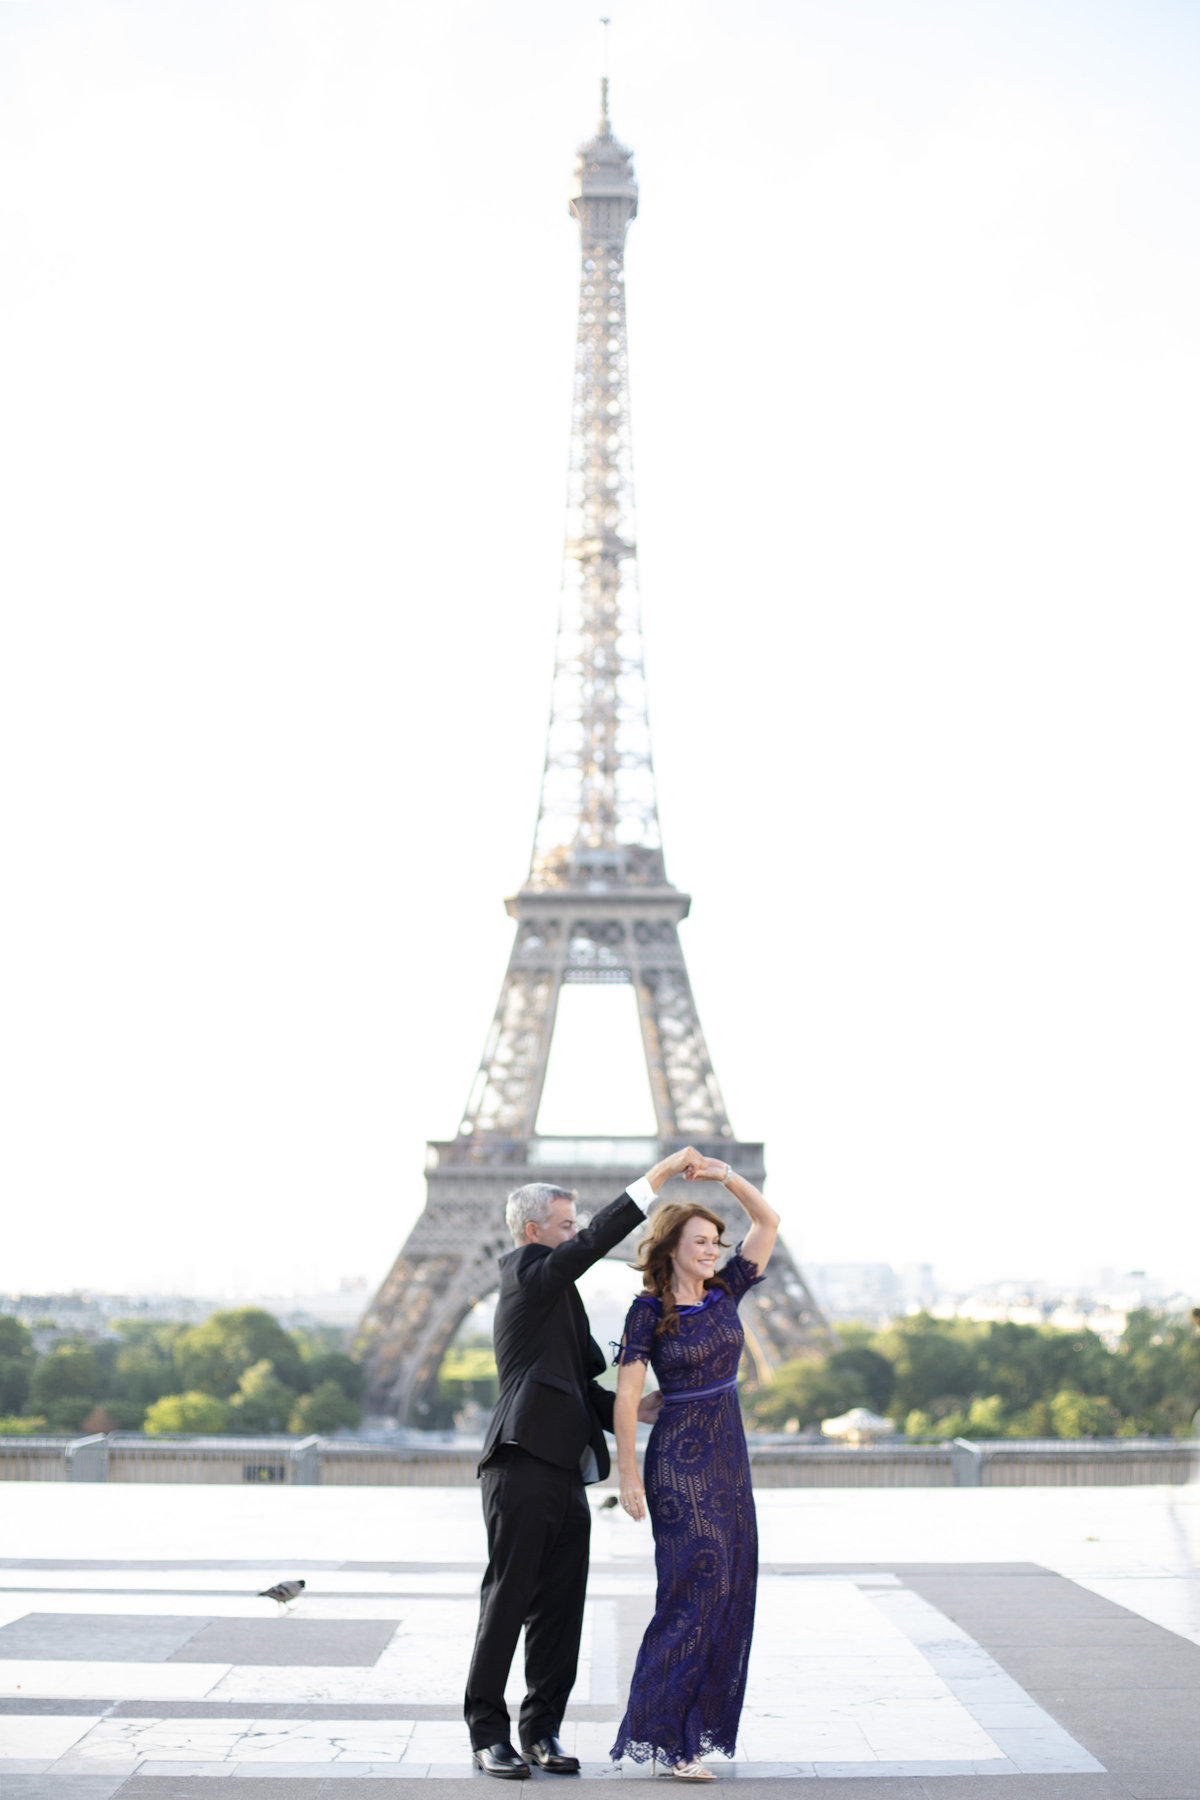 Couple celebrates their love in front of Eiffel Tower 55